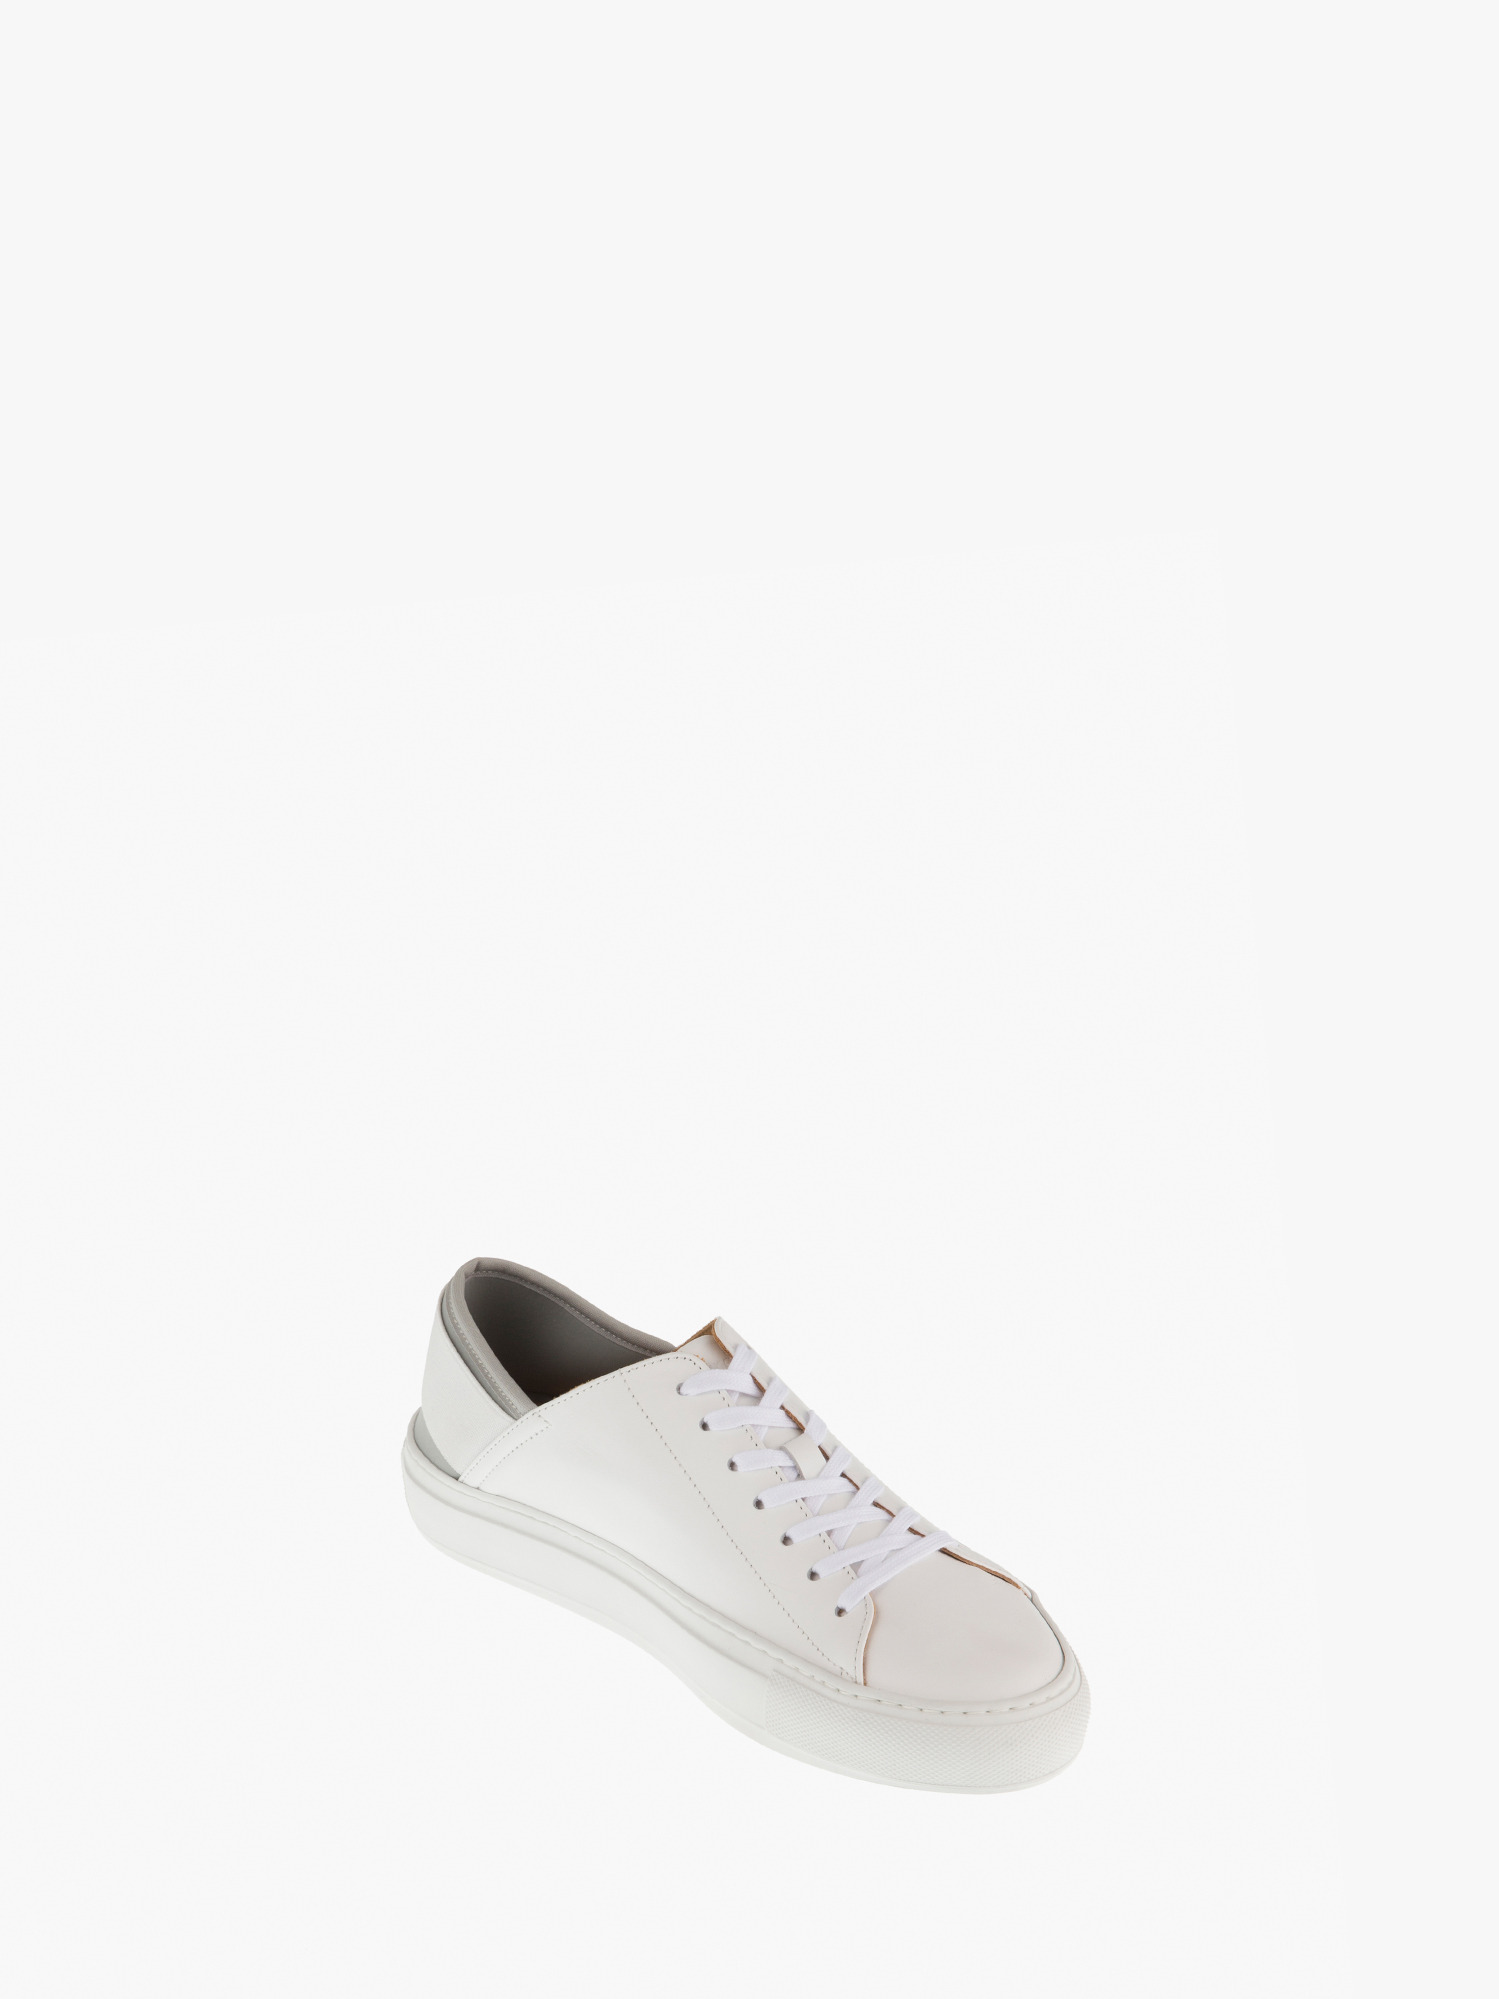 blucher 04 leather white(m)